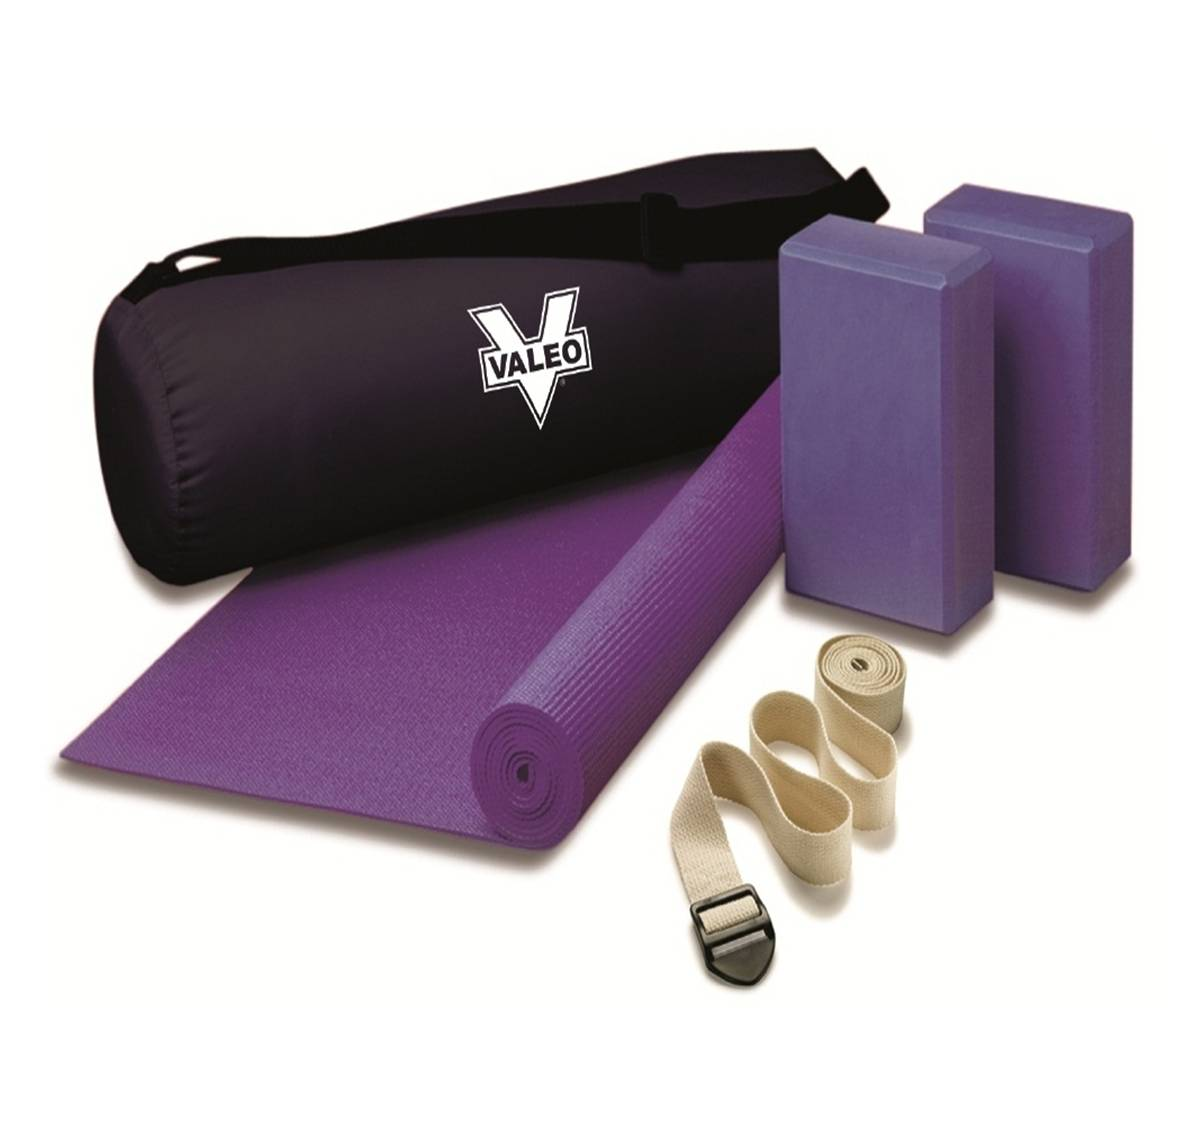 Valeo Yoga Kit